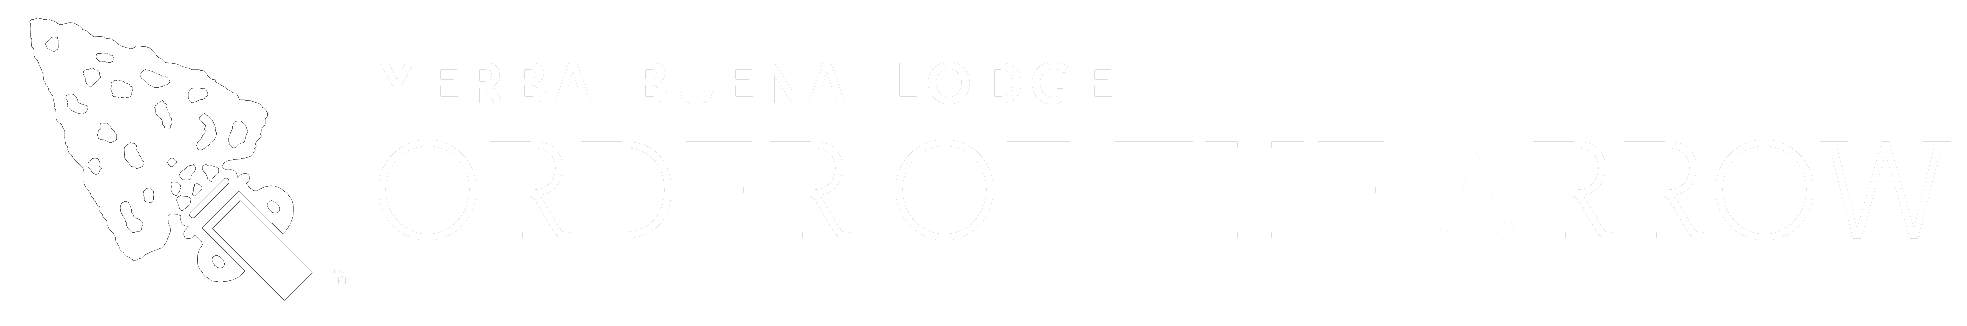 Yerba Buena Lodge | Order of the Arrow